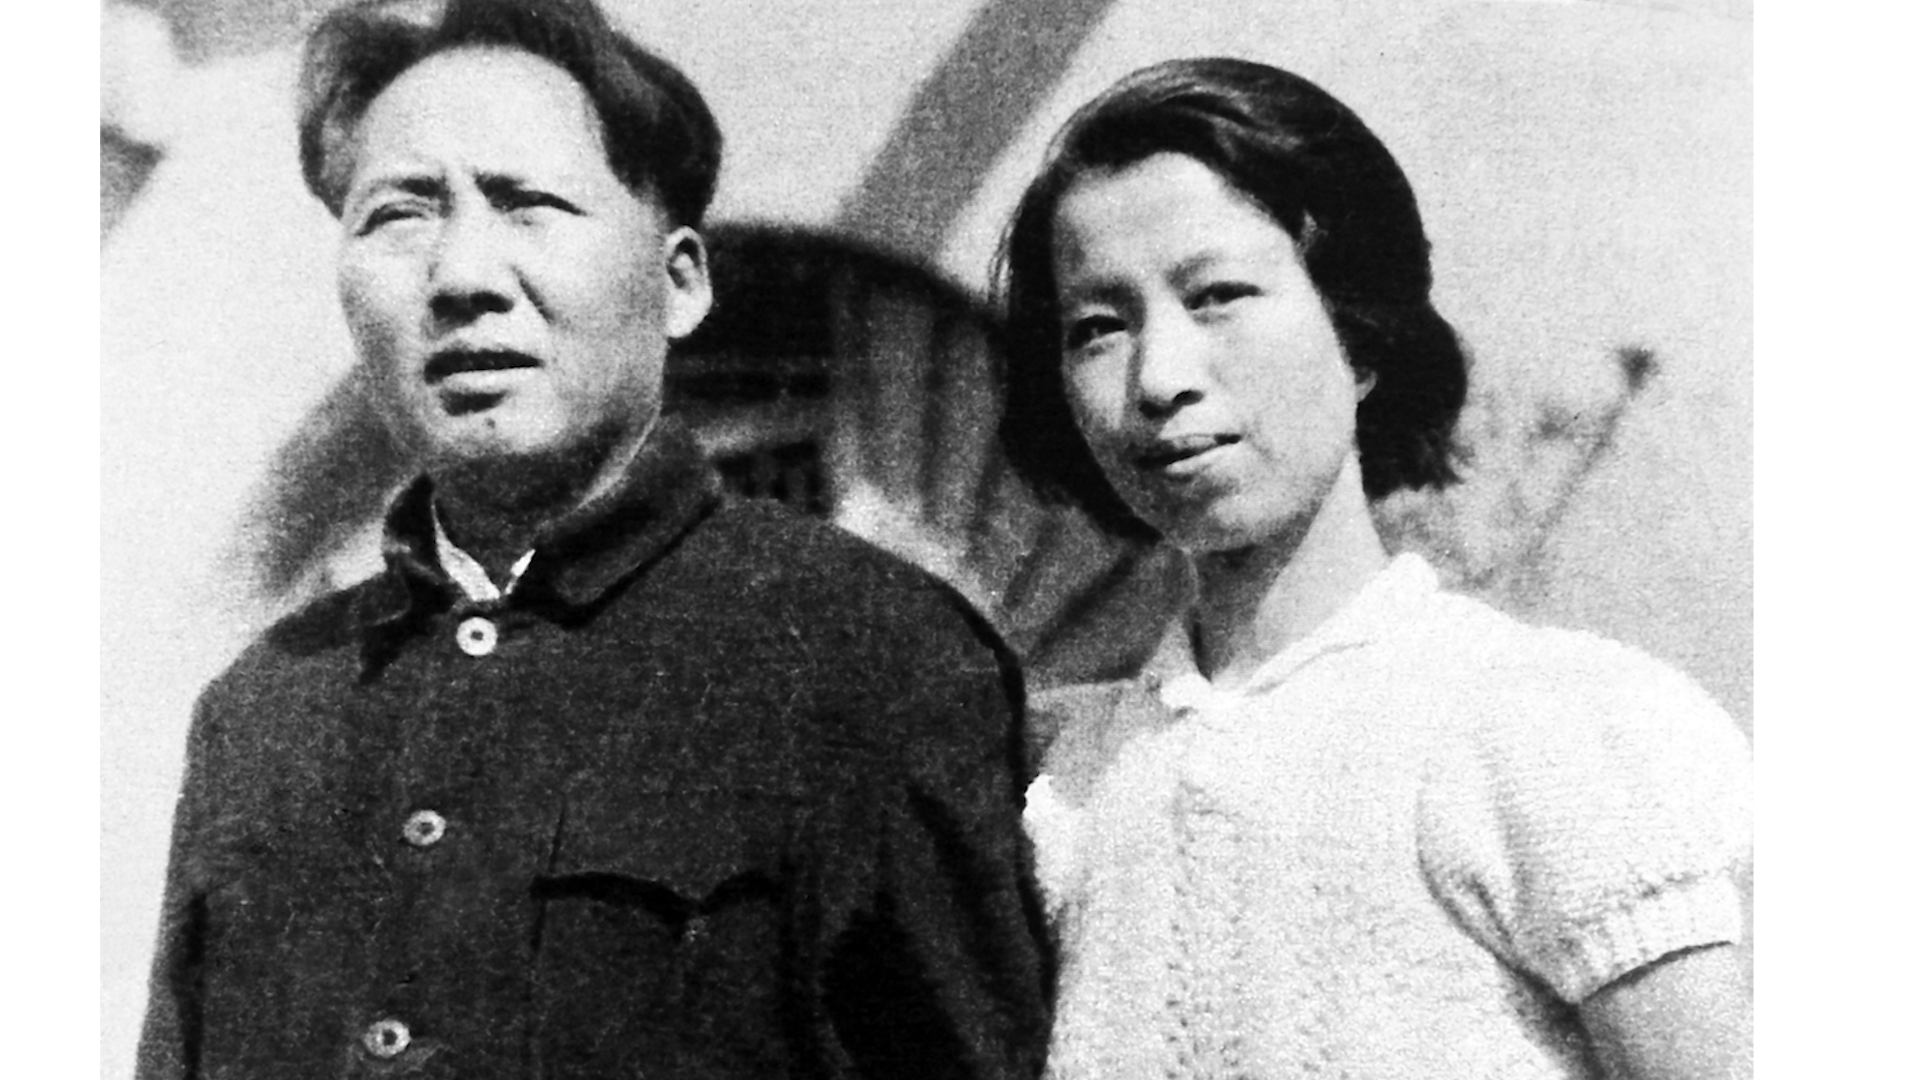 Mao and his wife Jiang Qing, an actor and revolutionary propagandist who features prominently in the series